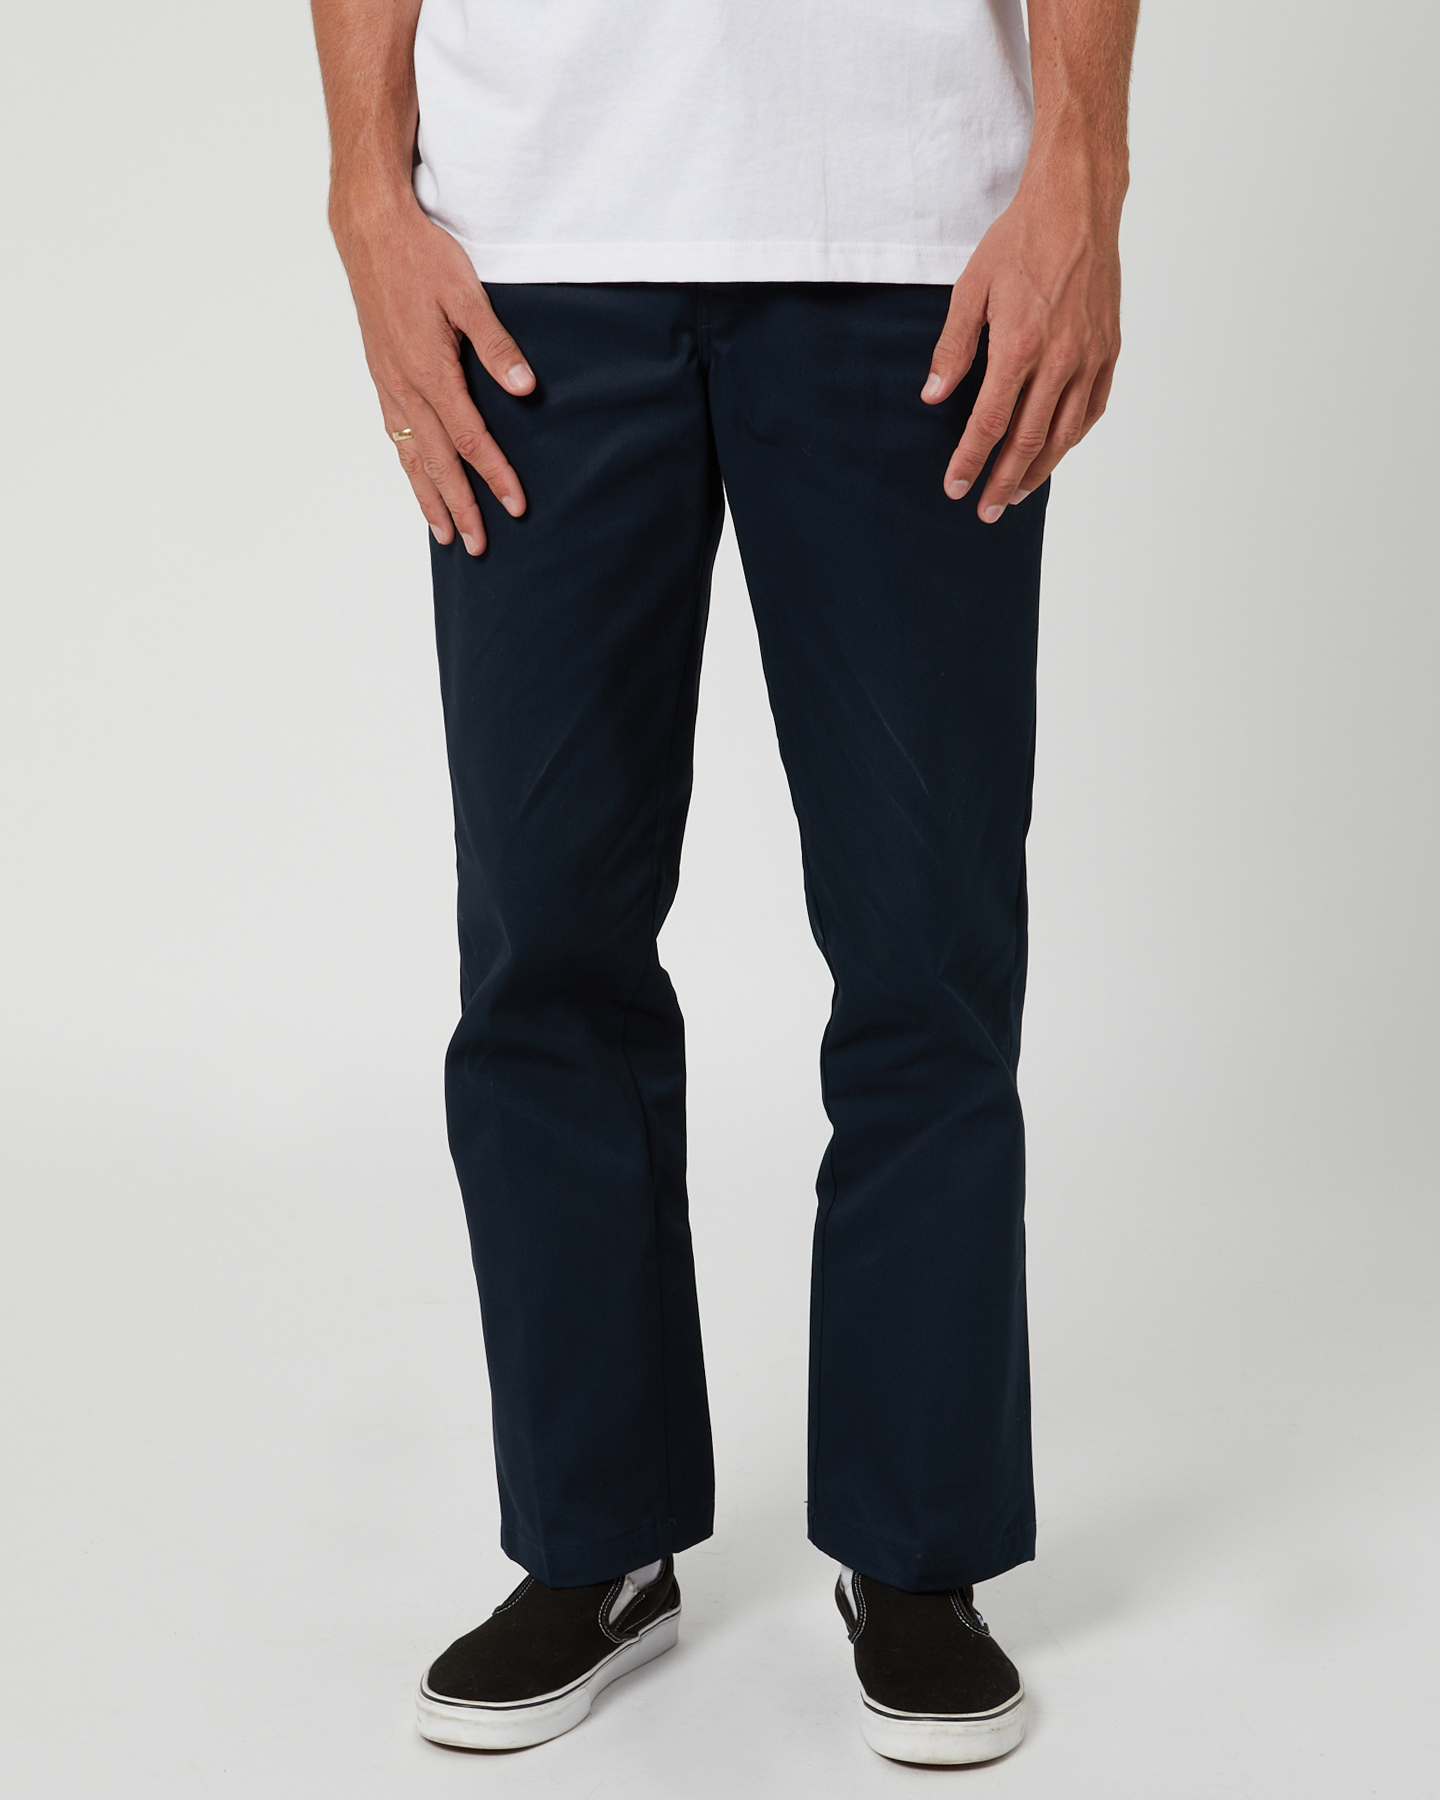 Dickies 874 Original Fit Mens Navy Cotton Polyester Flat Front Pants Dark Navy